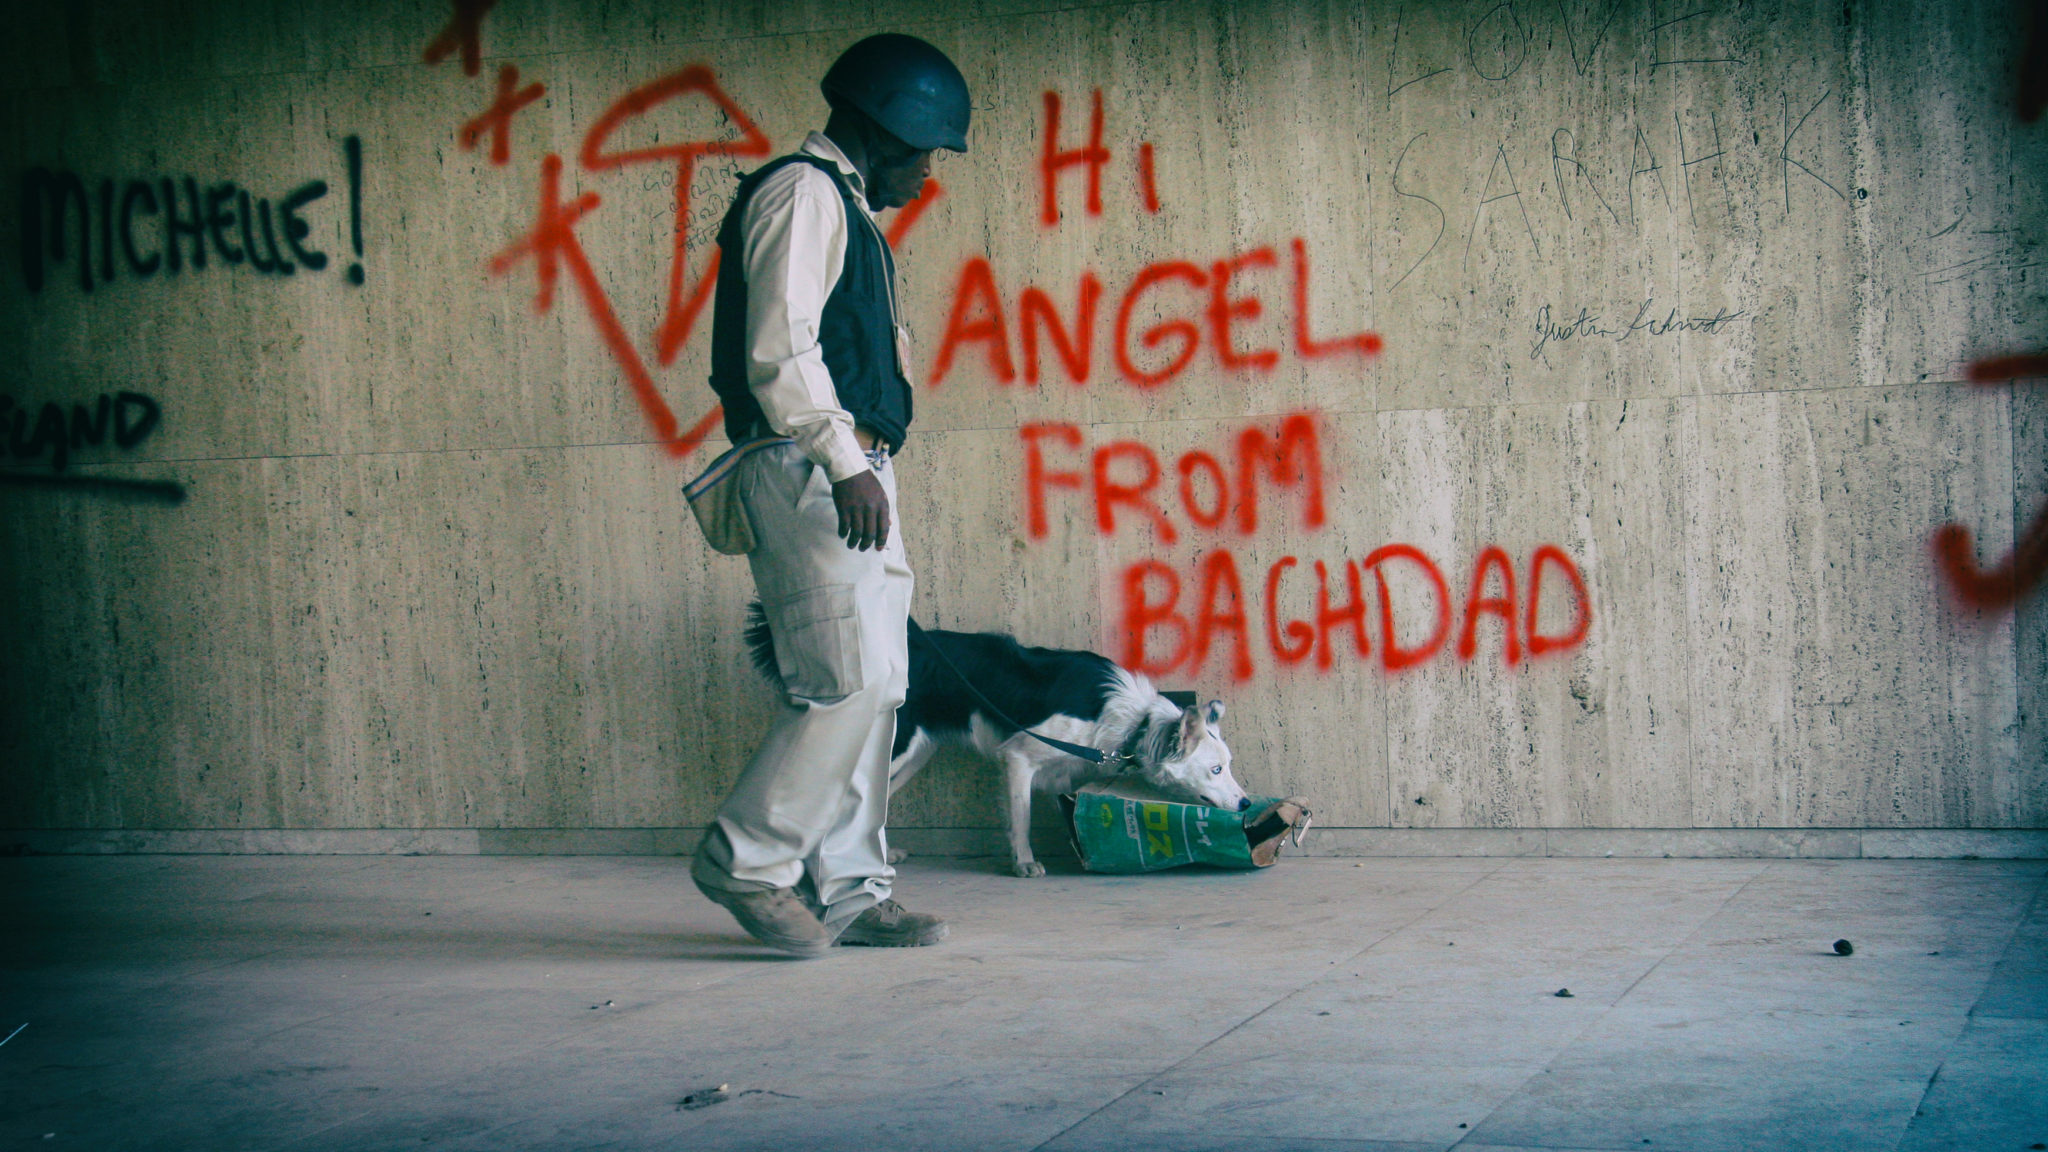 Photo by Dastardly Whiplash/Picfair. Dastardly Whiplash works as a security guard in Afghanistan and got some of the most interesting shots of the area